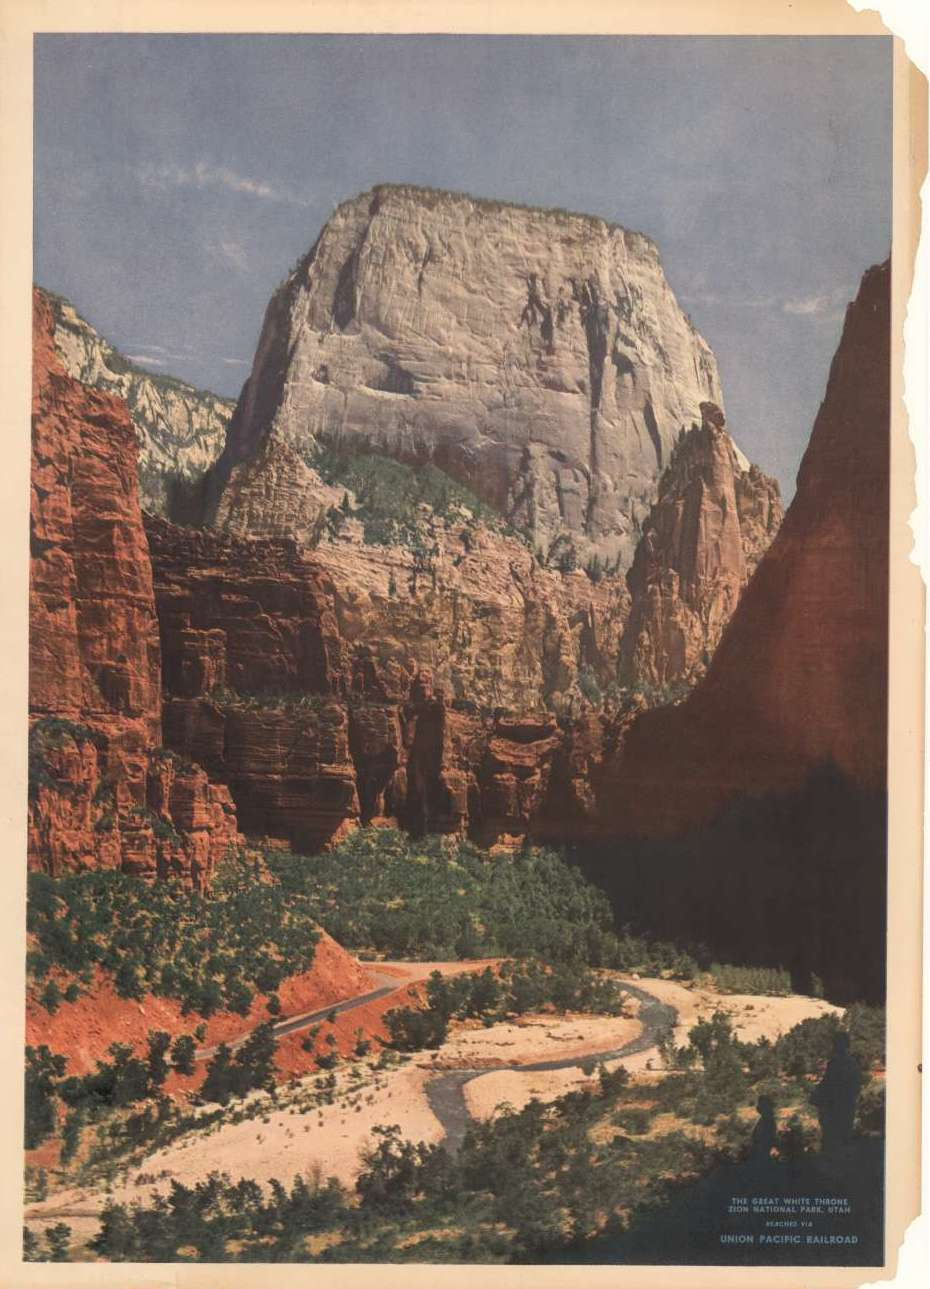 Cover of promotional brochure featuring the Great White Throne at Zion National Park